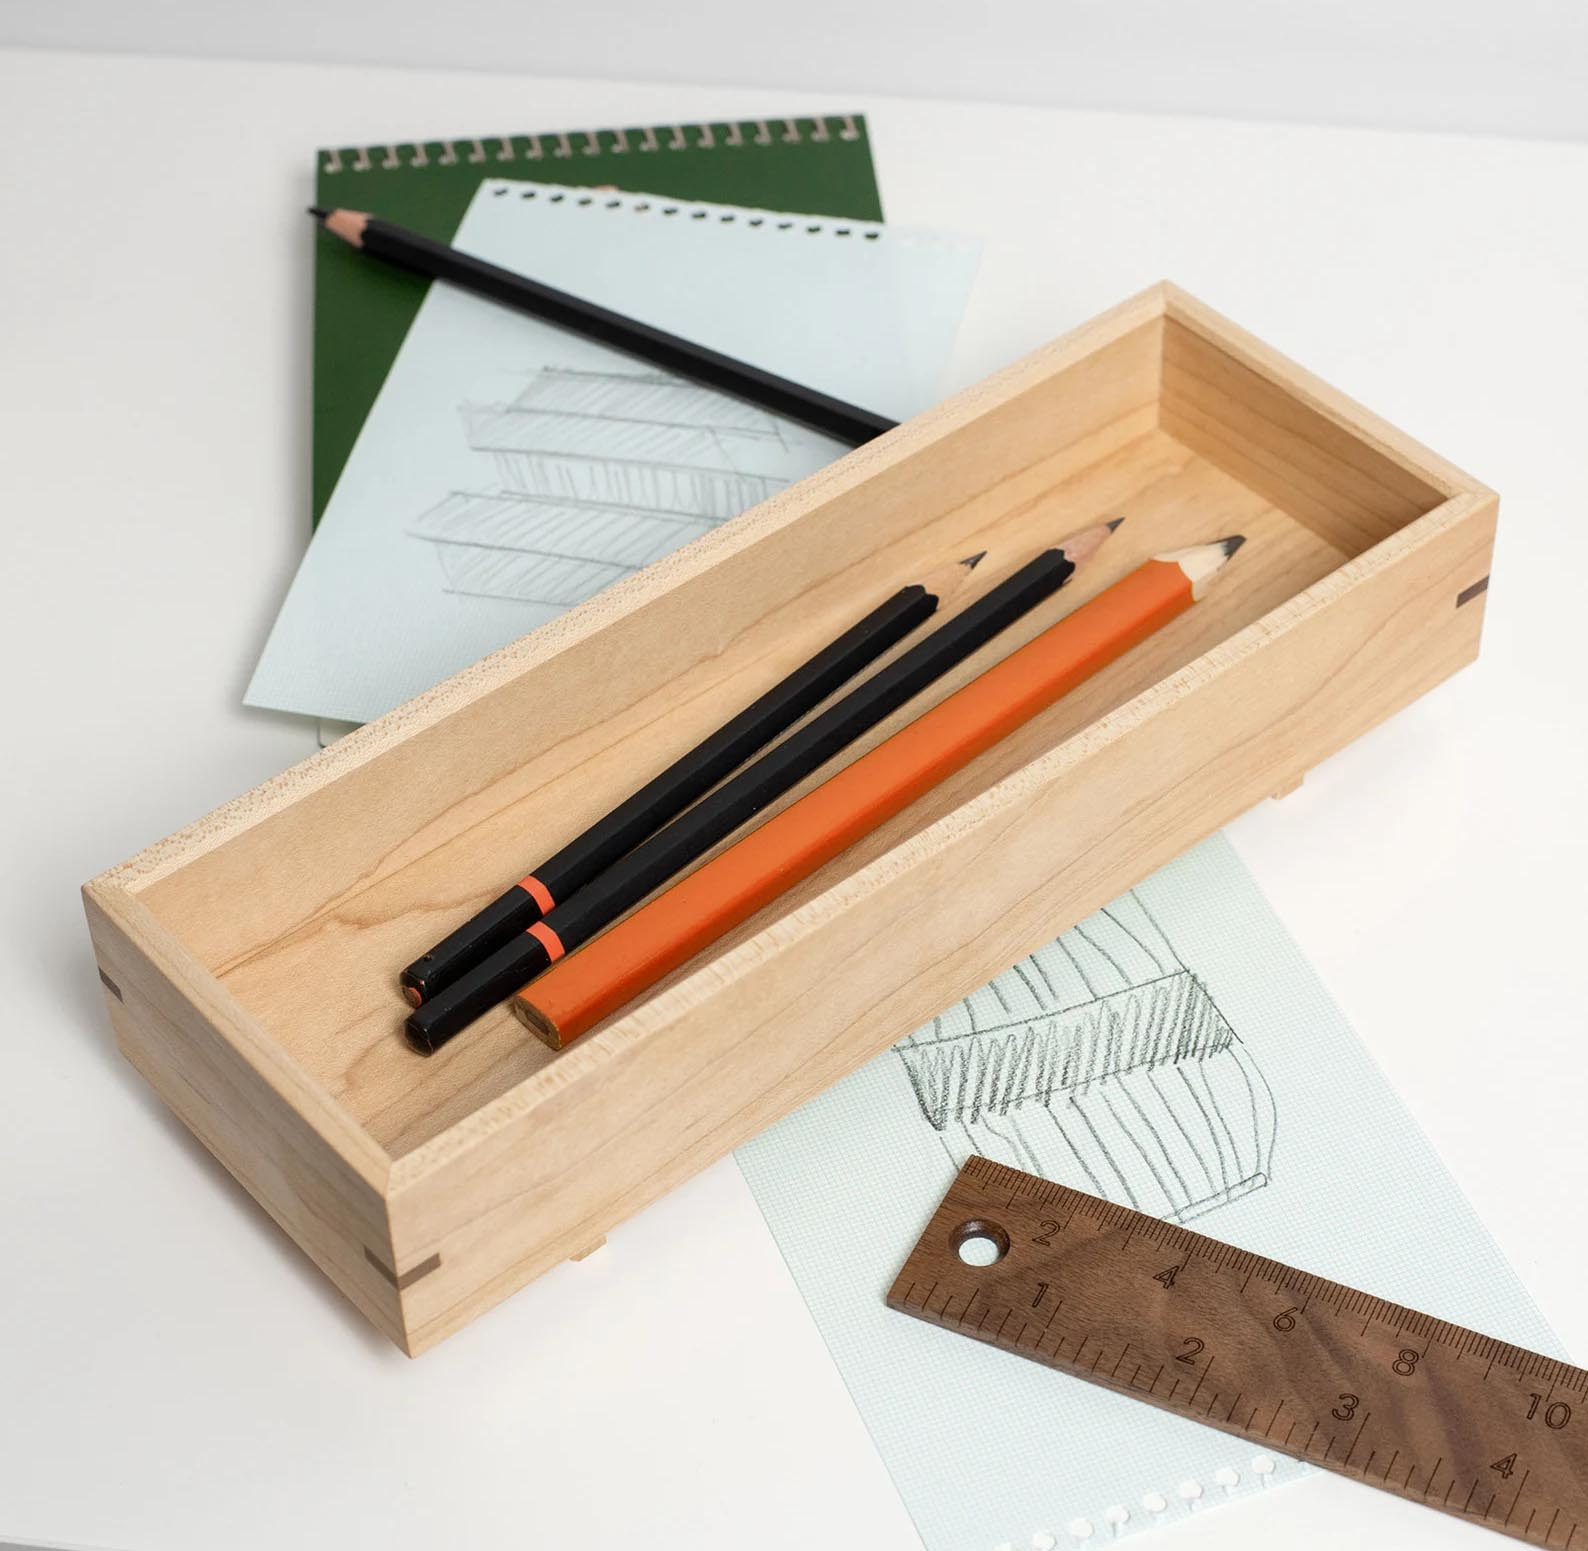 Modern Gift Ideas - Wood pen and pencil tray.